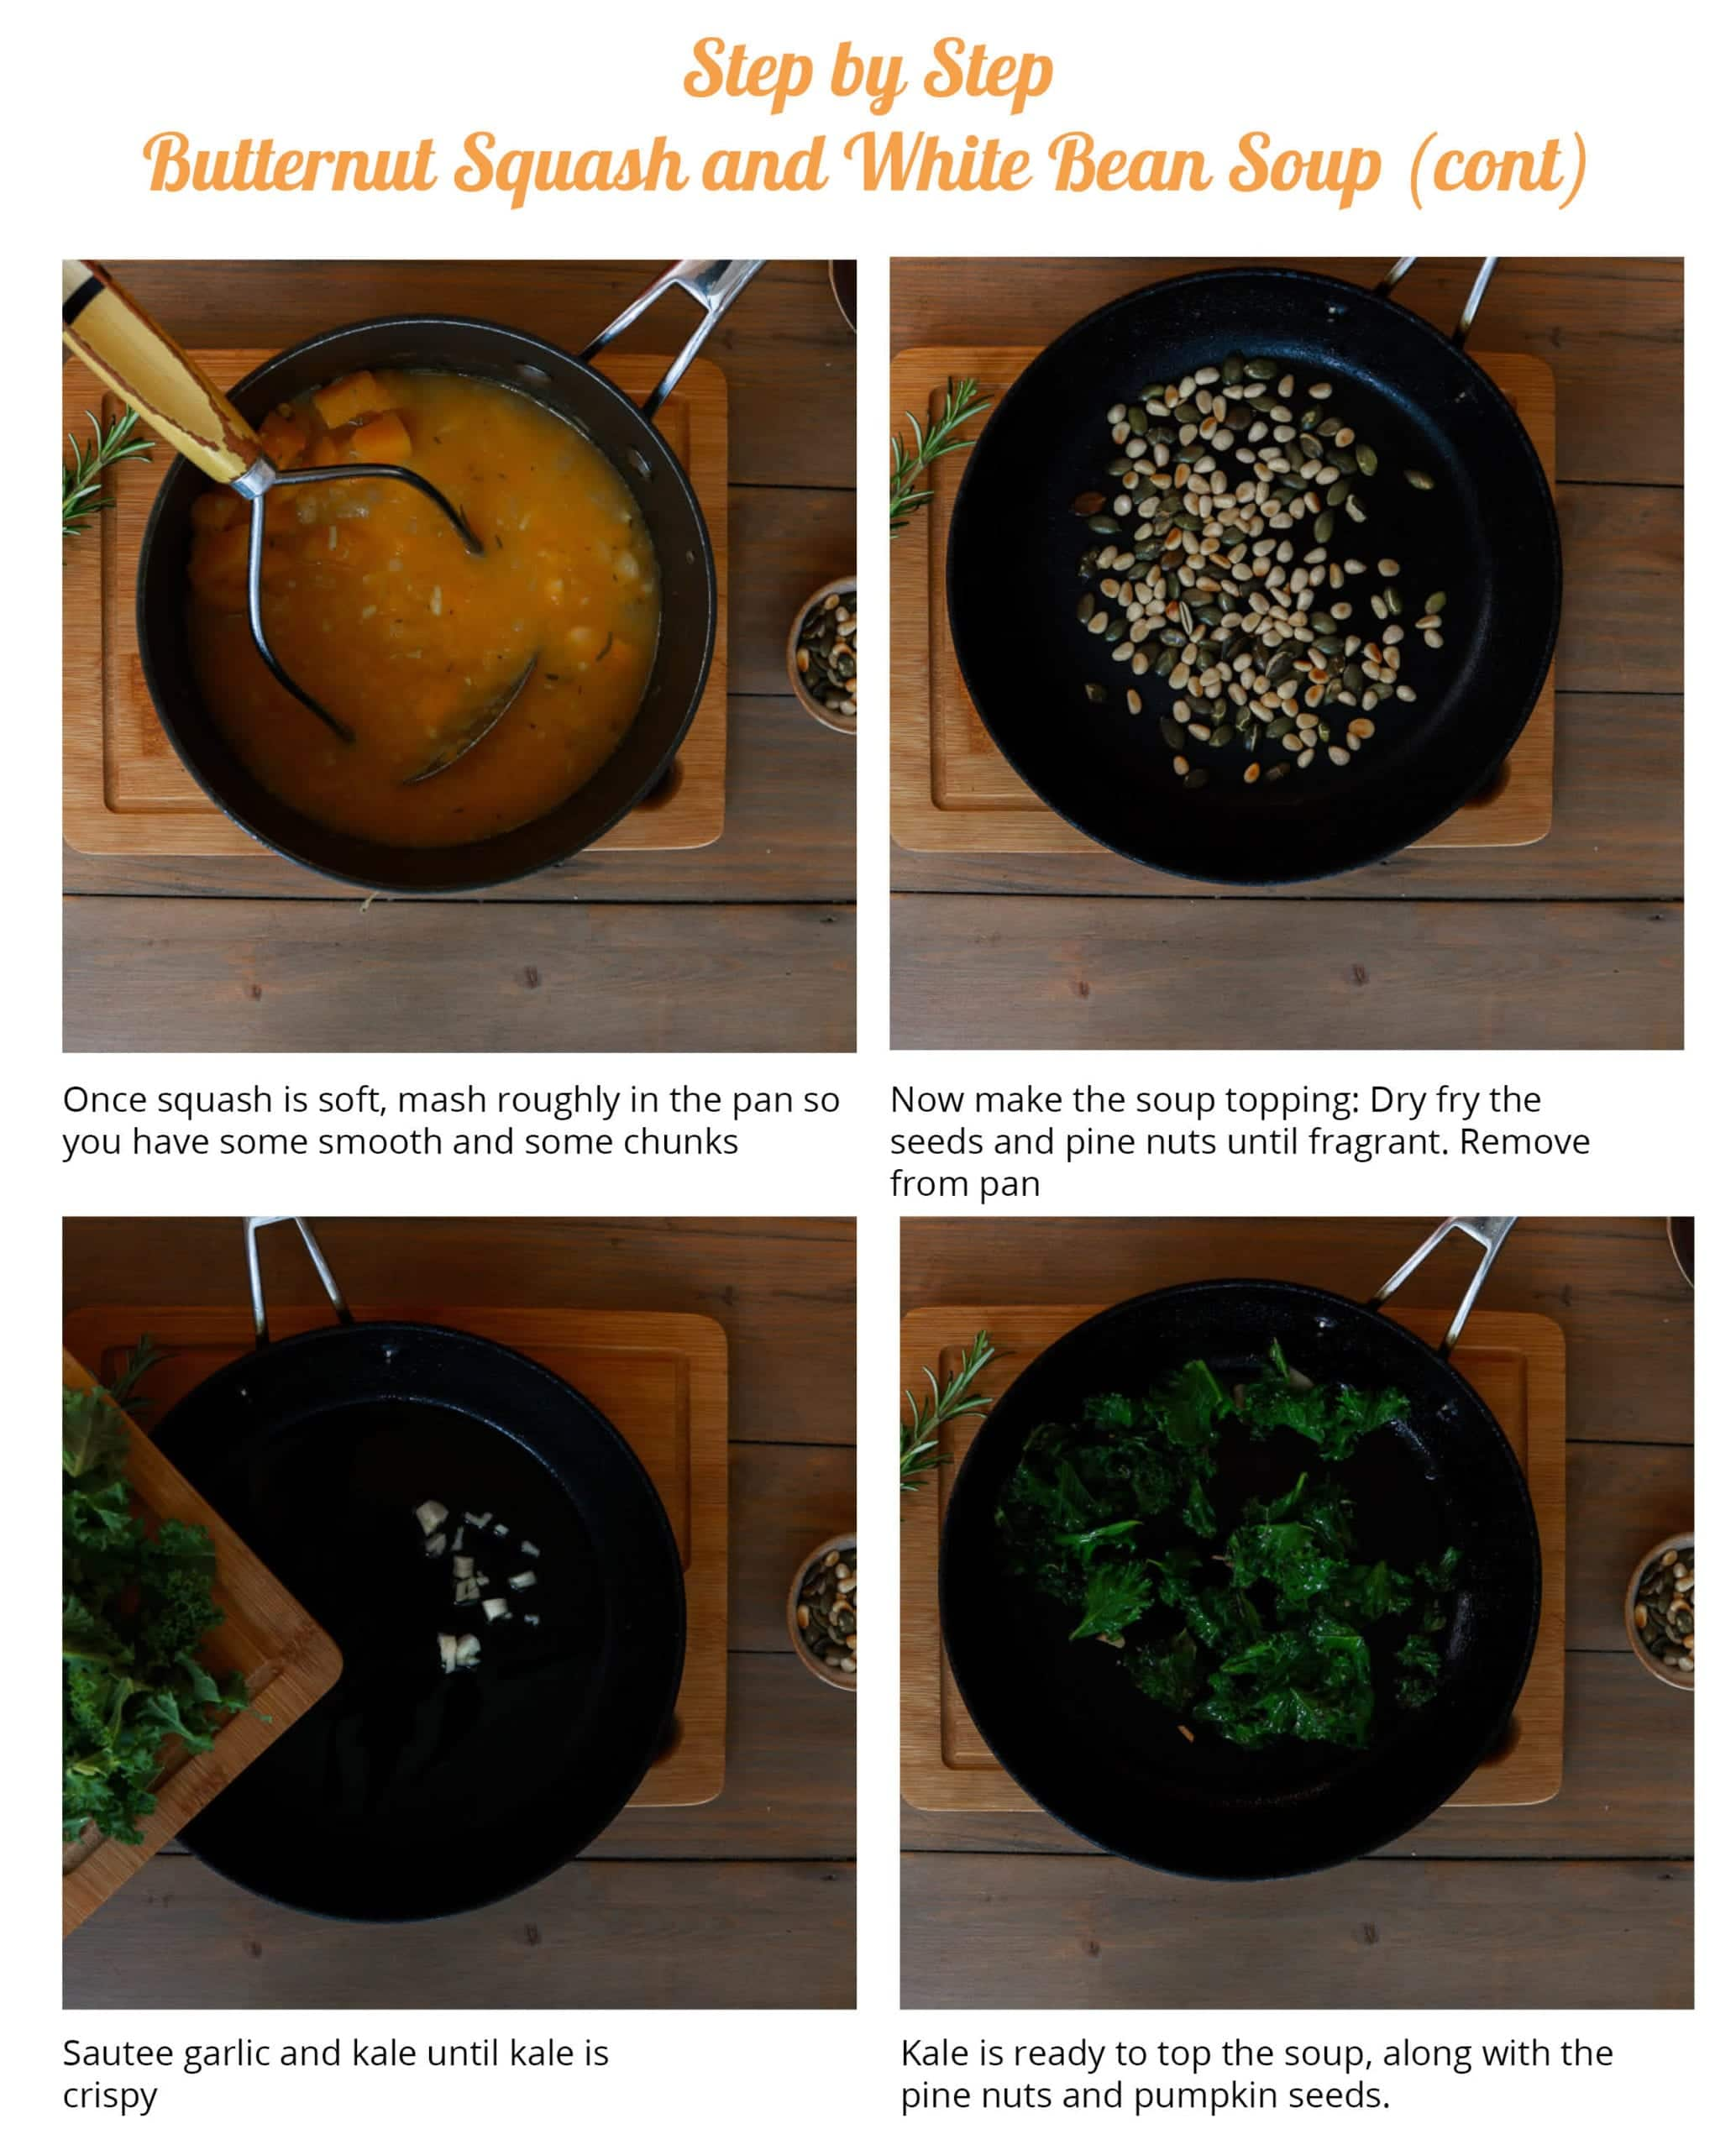 Step by step showing the kale and pine nut topping for the soup.